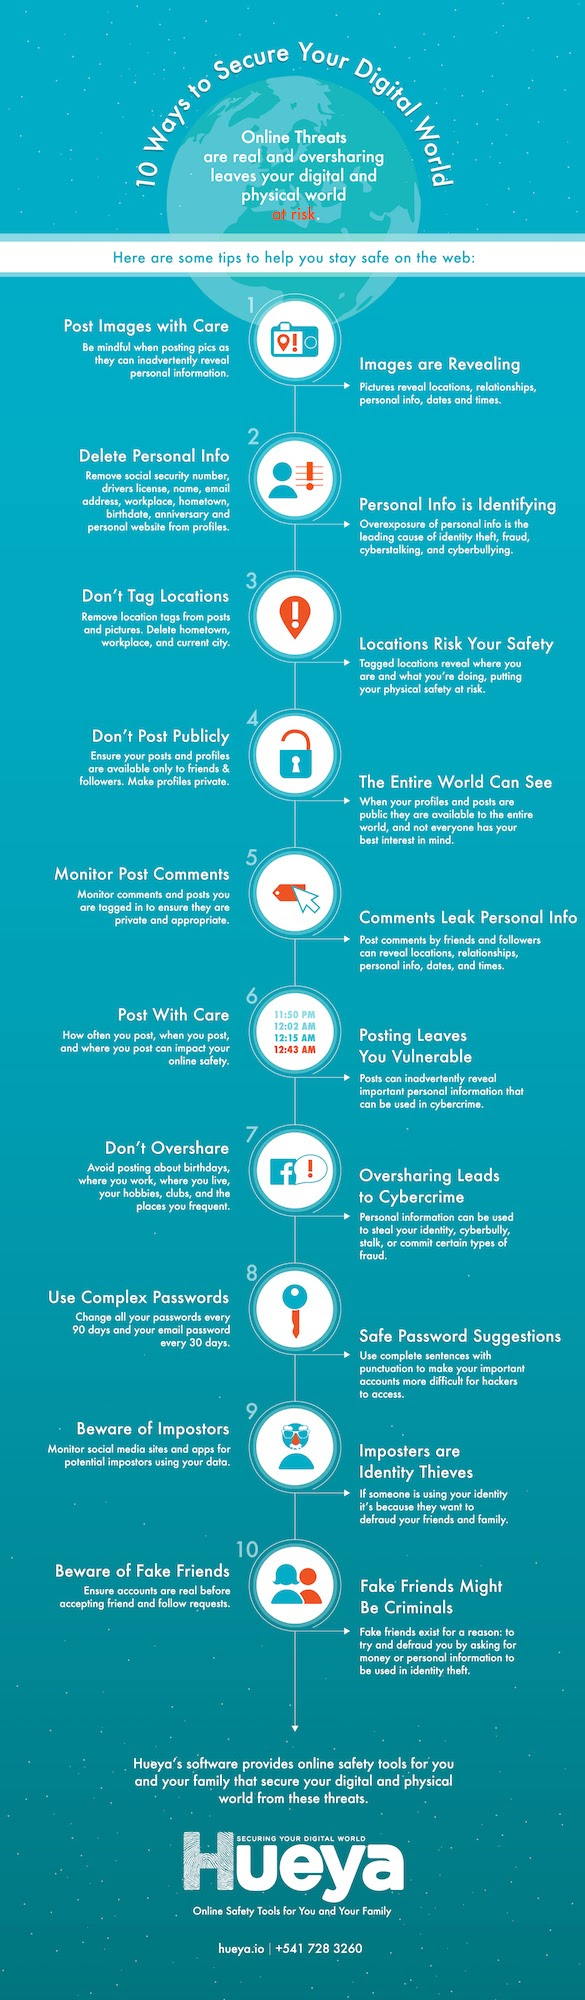 10 Ways to Secure Your Digital World - #infographic